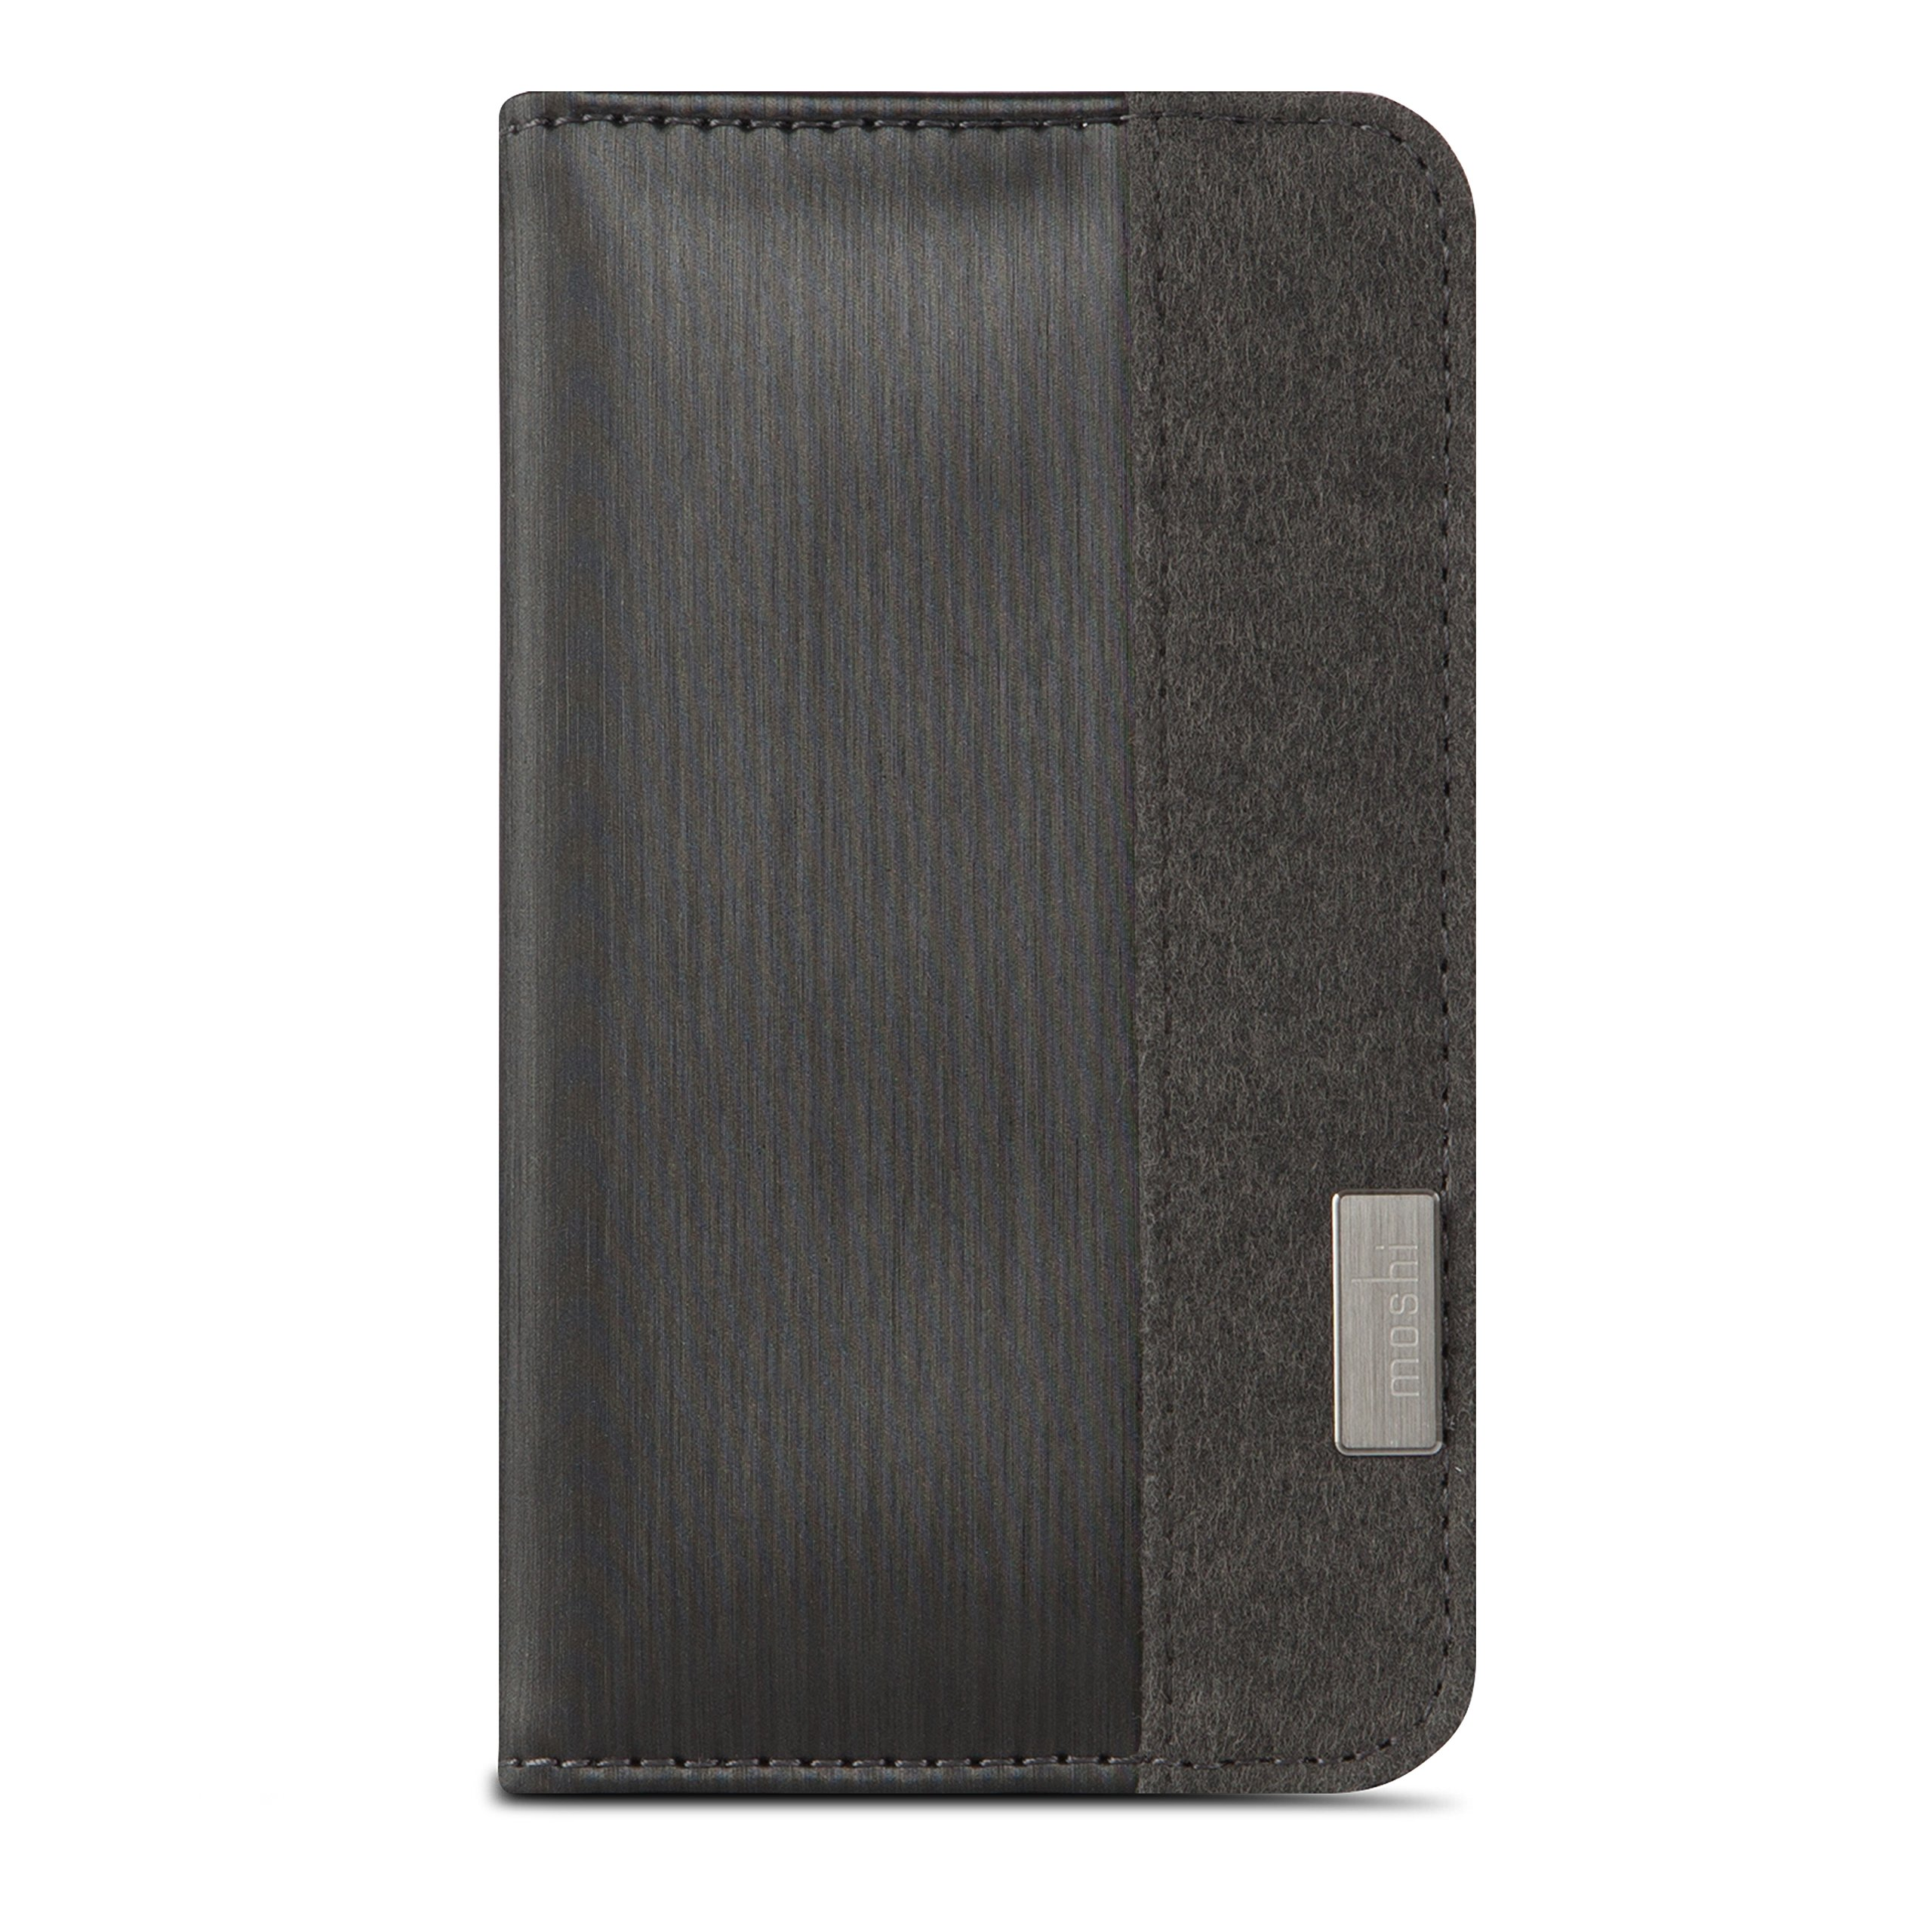 Moshi Overture Wallet Case for iPhone 6/6s - Black by Moshi